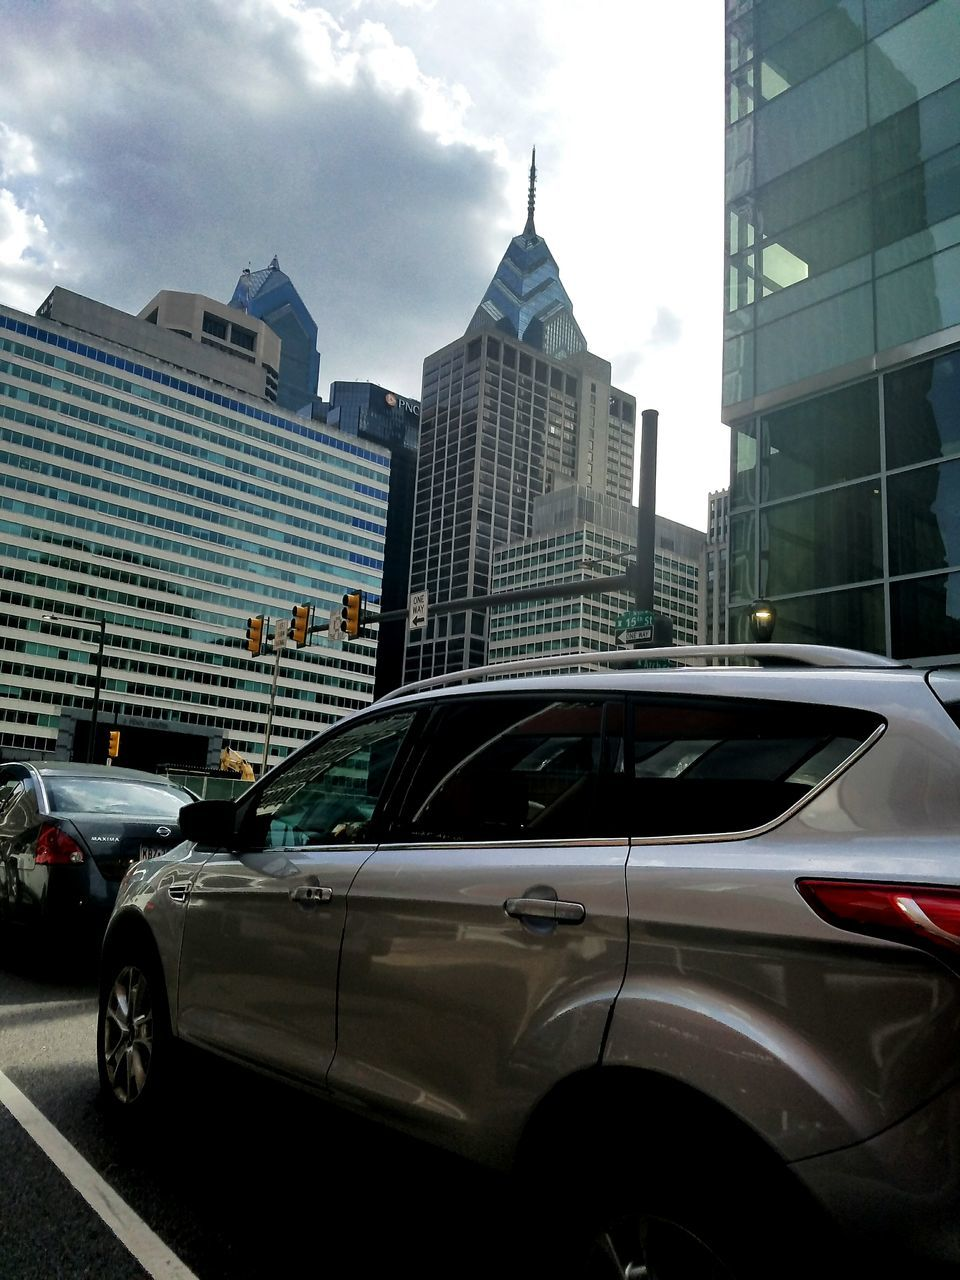 car, architecture, building exterior, built structure, city, skyscraper, transportation, modern, mode of transport, sky, land vehicle, day, outdoors, growth, no people, cityscape